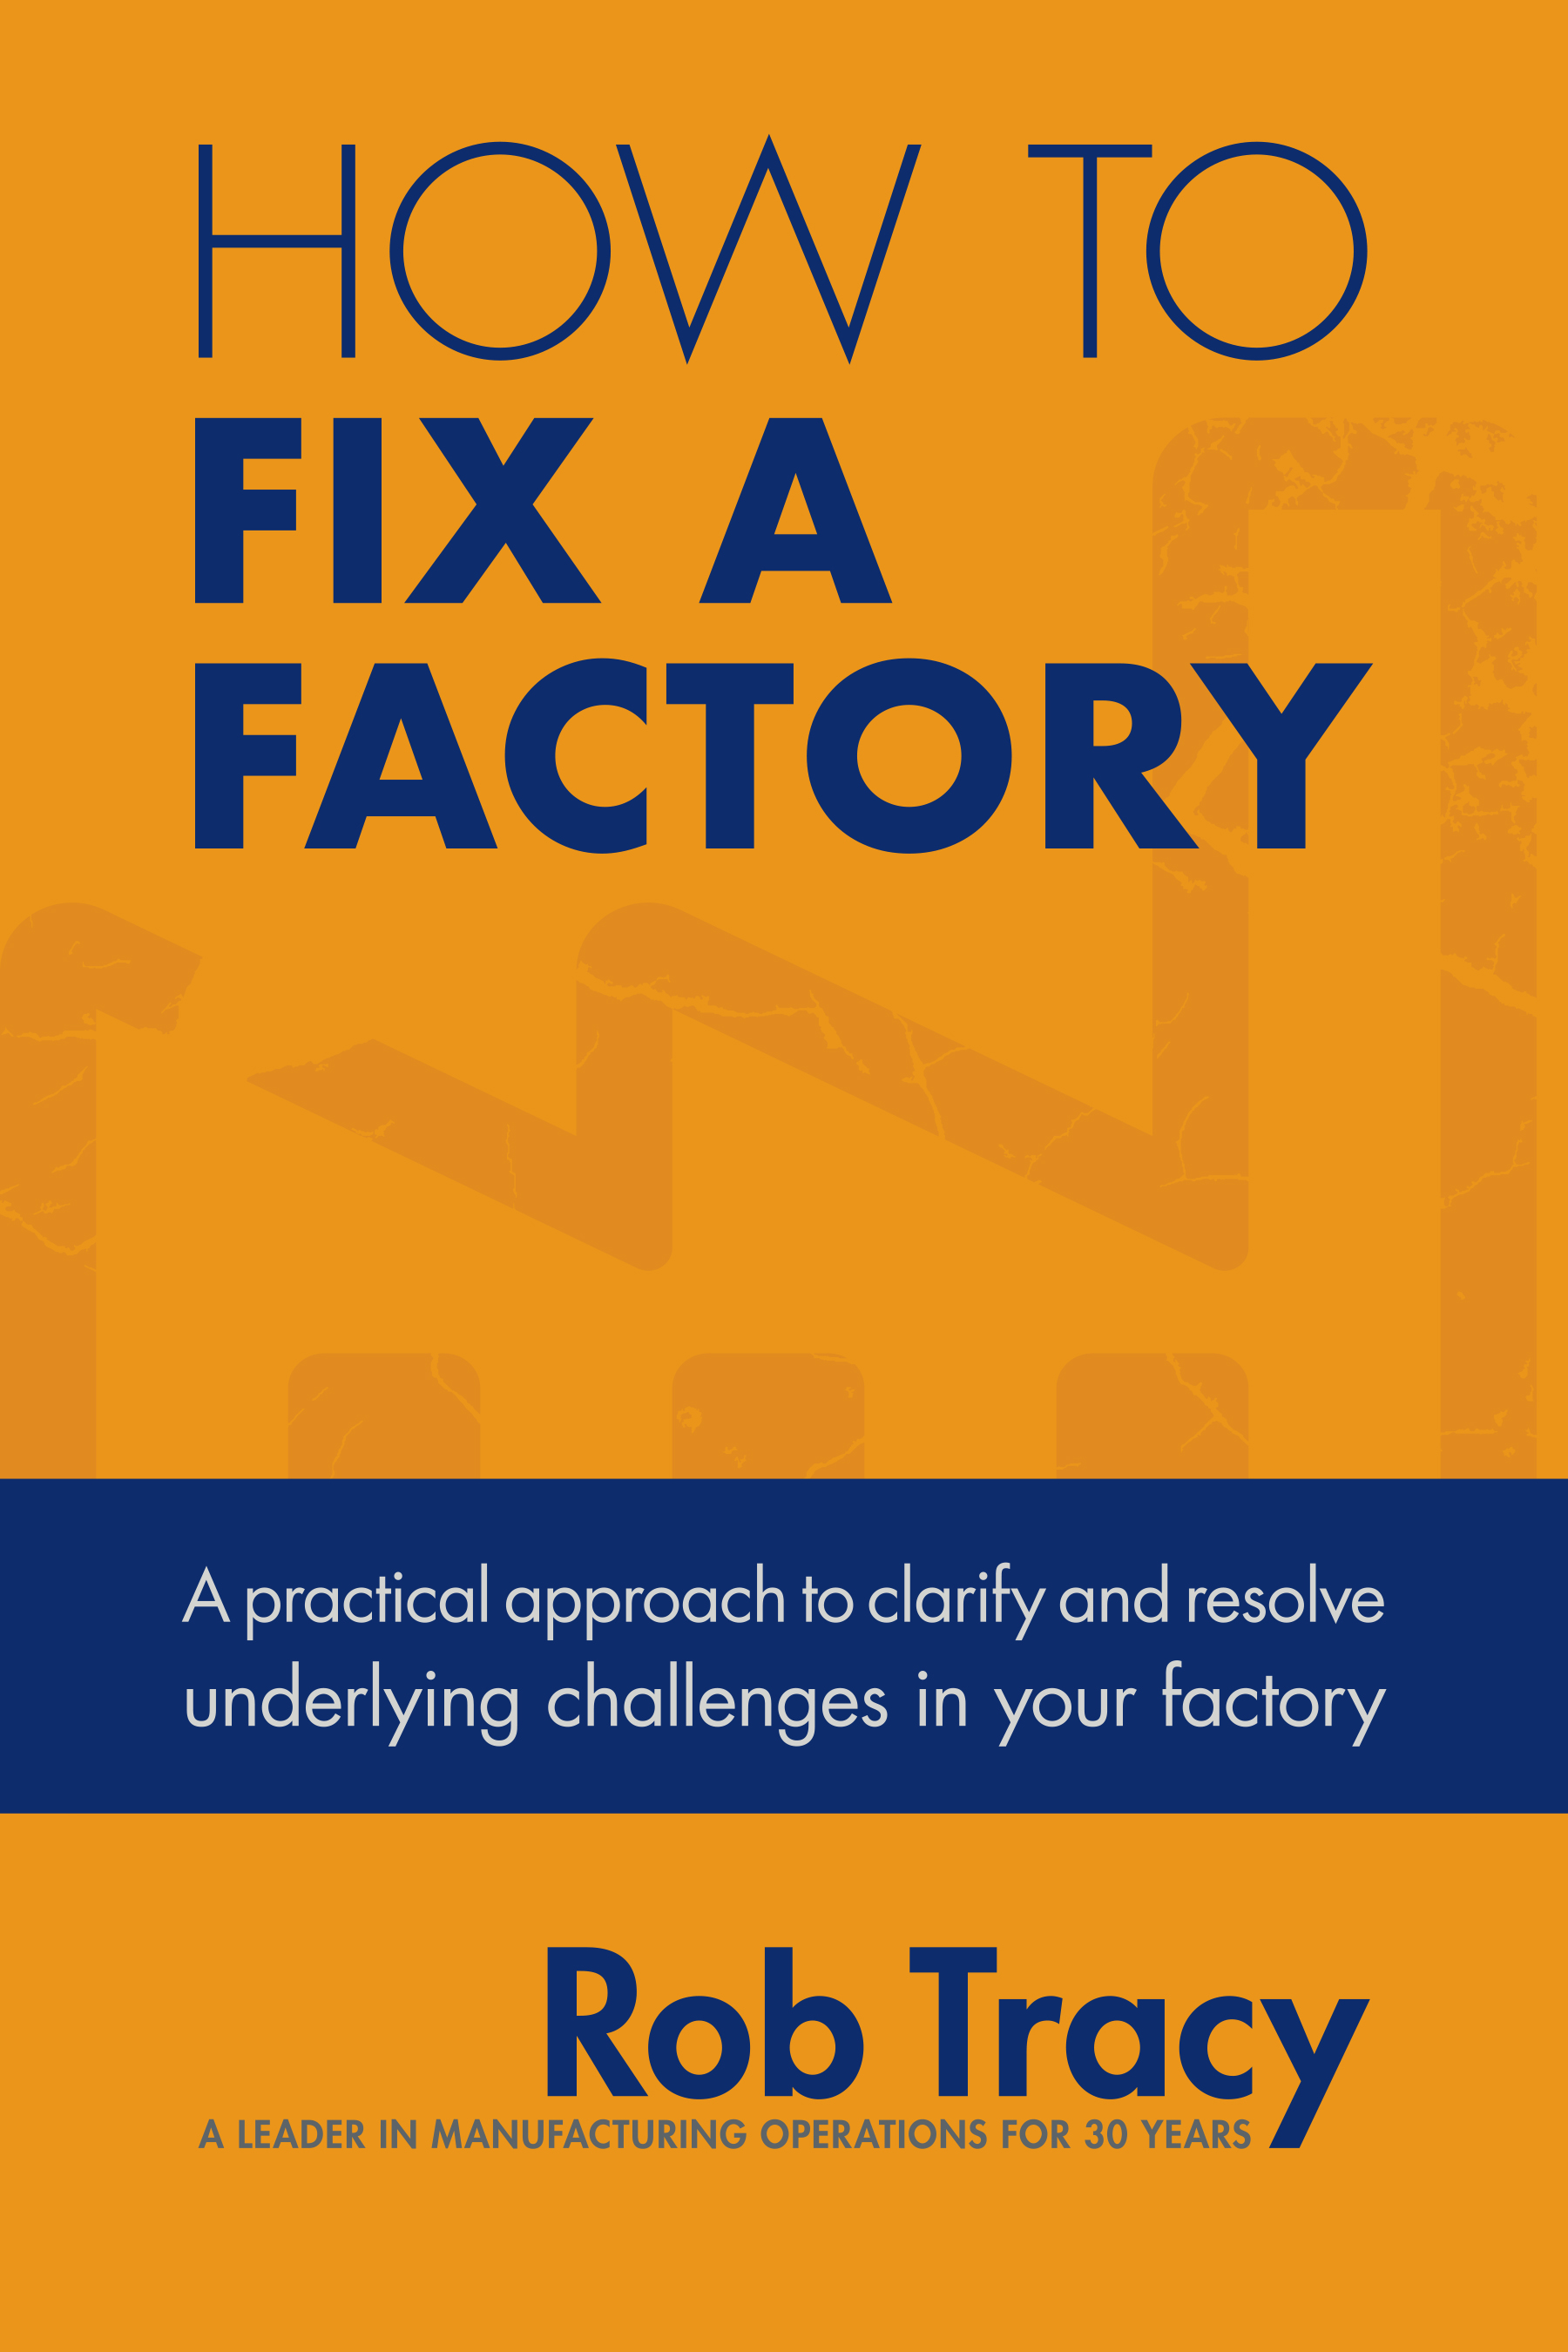 How to Fix a Factory by Rob Tracy